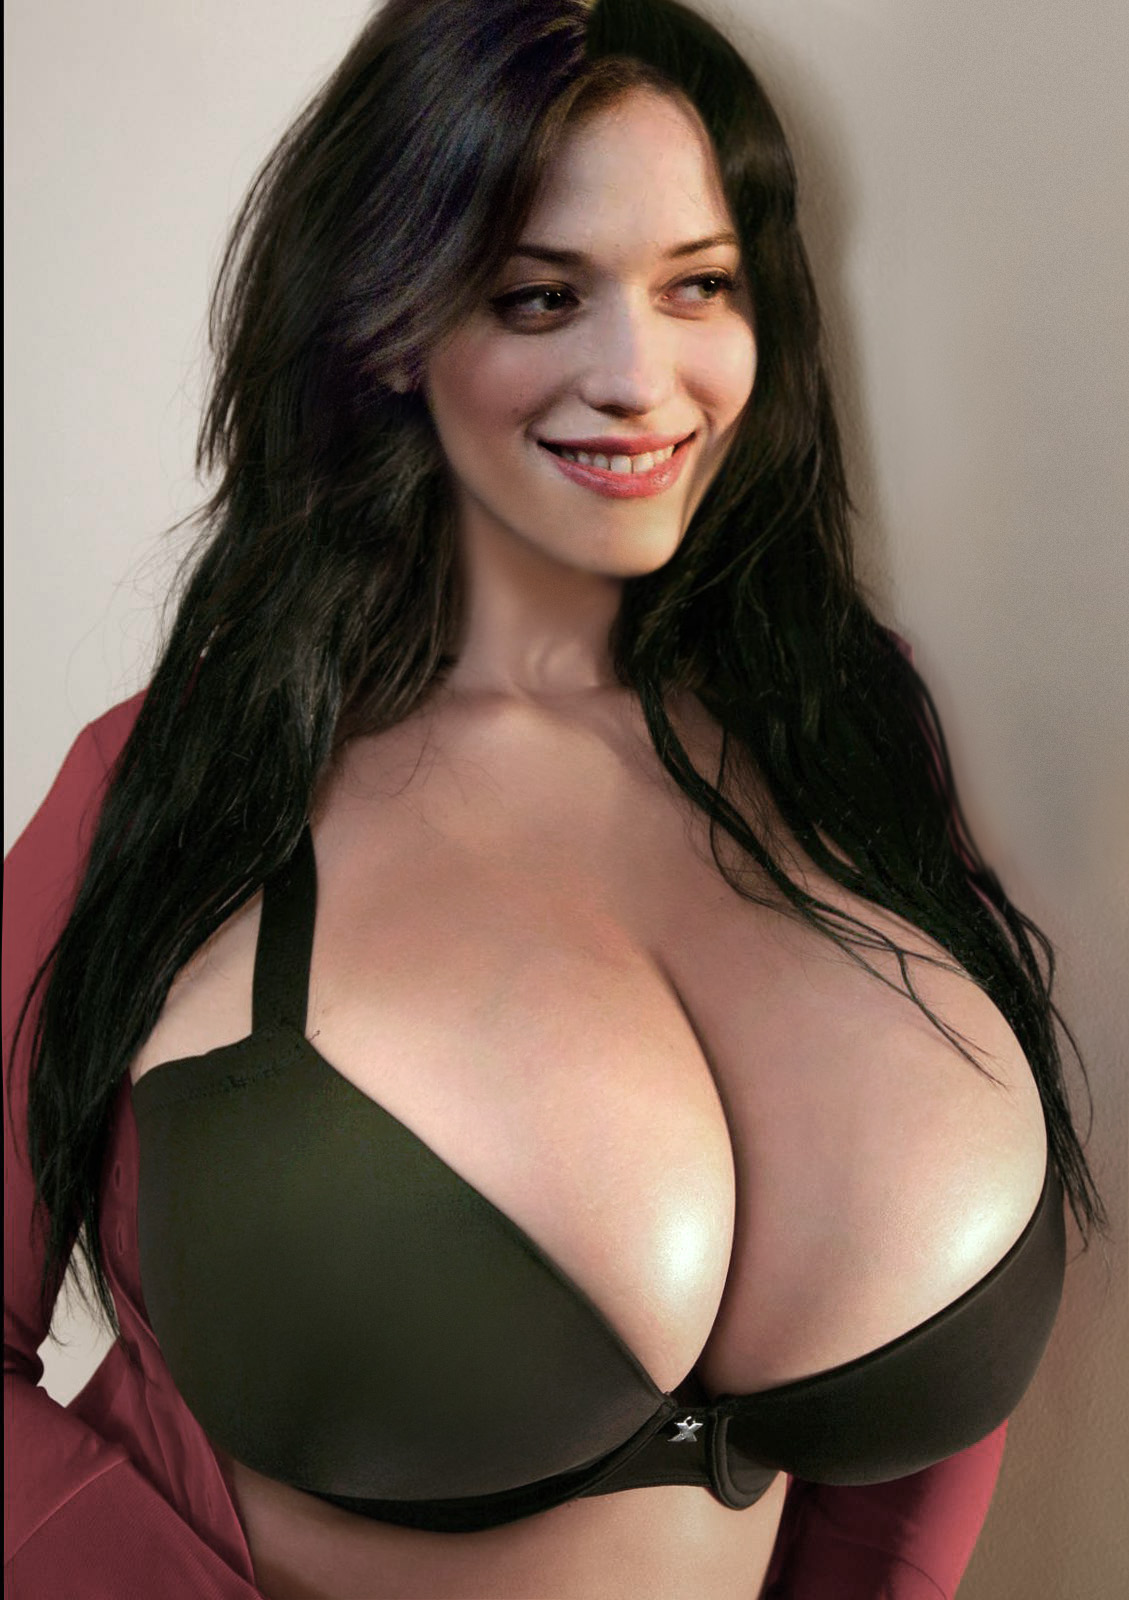 Boobs celebs huge nude